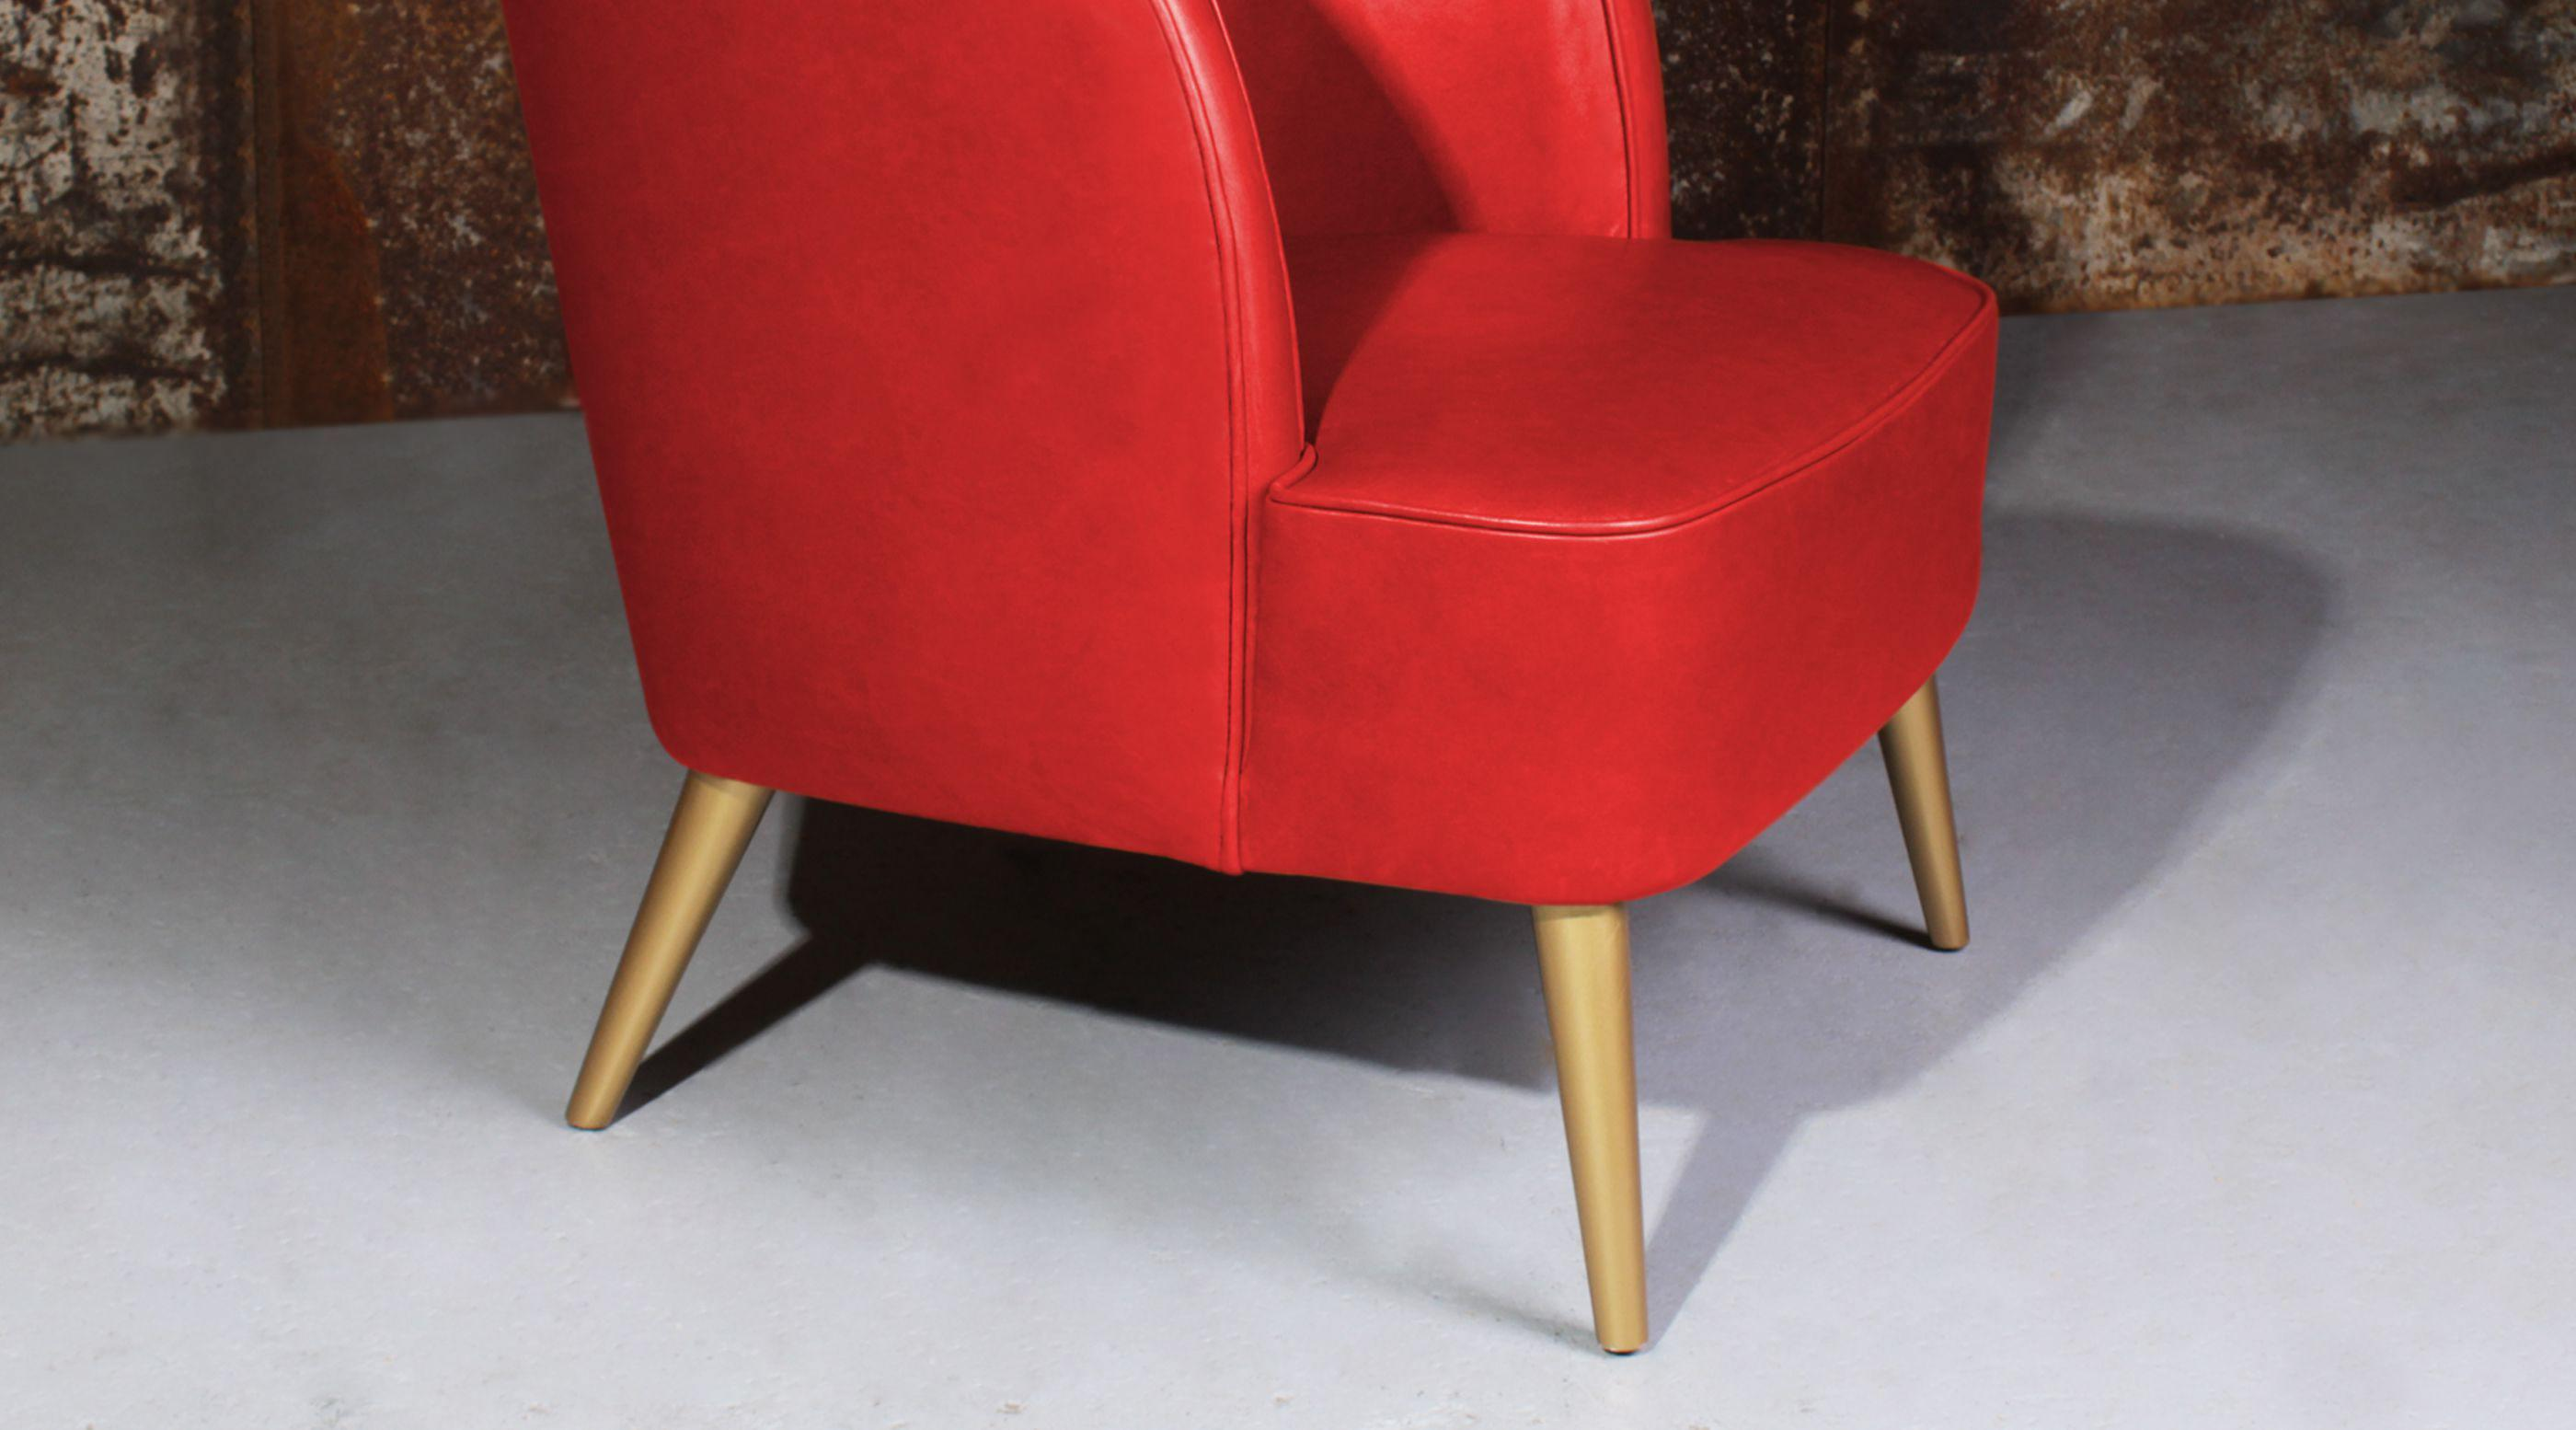 Godard Mid-Century Modern Armchair in living coral leather